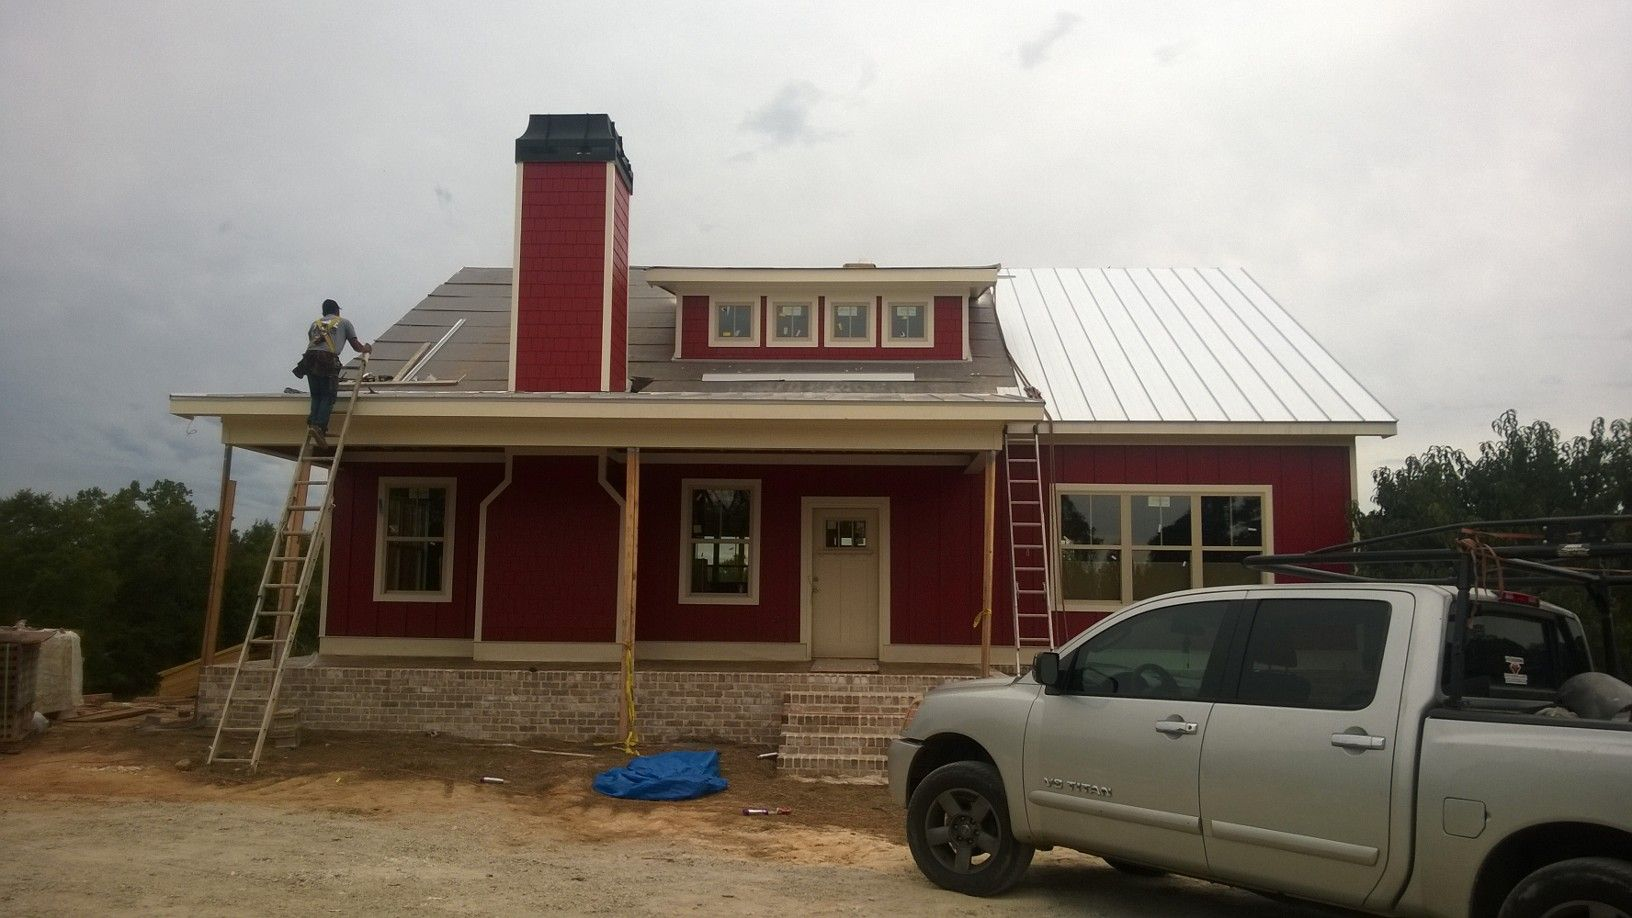 Standing seam roofing being installed